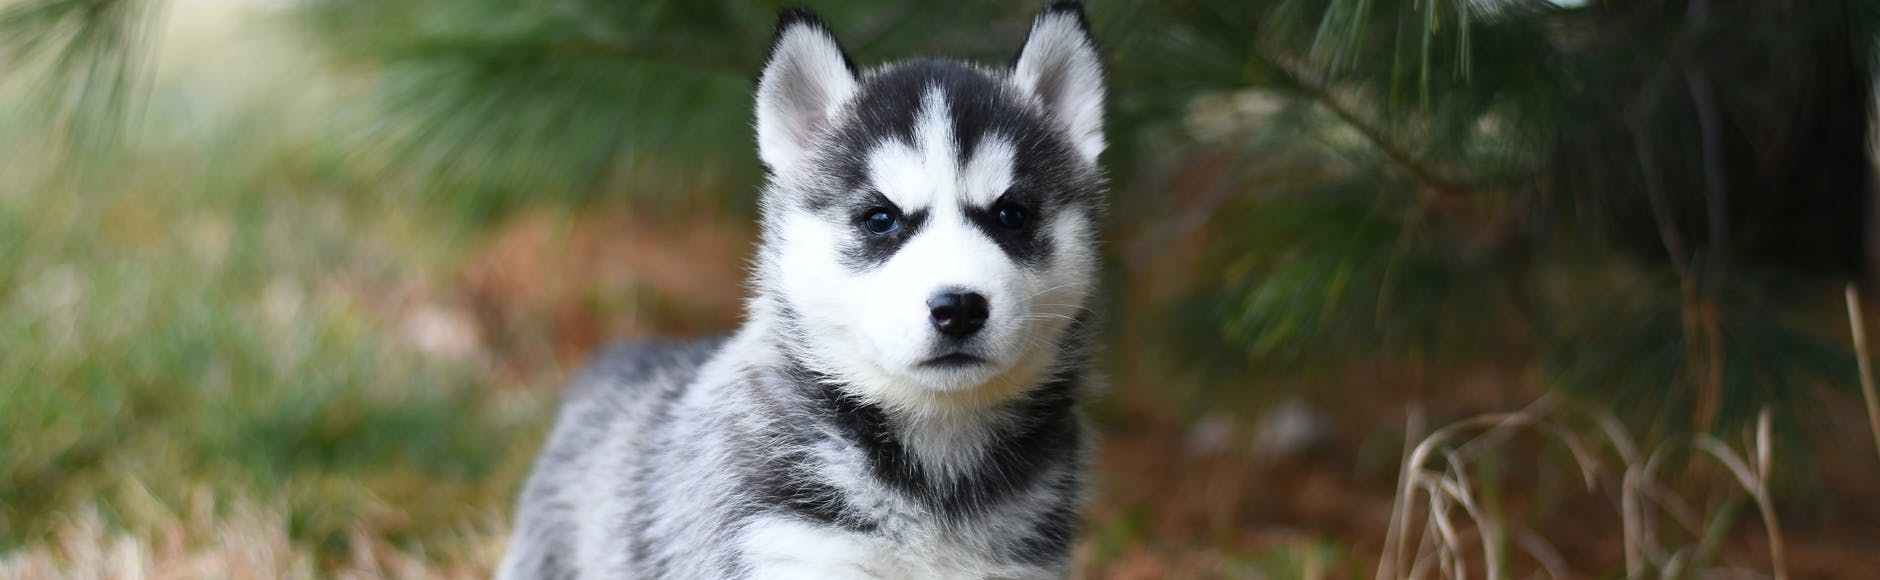 black and white siberian husky puppy on brown grass field